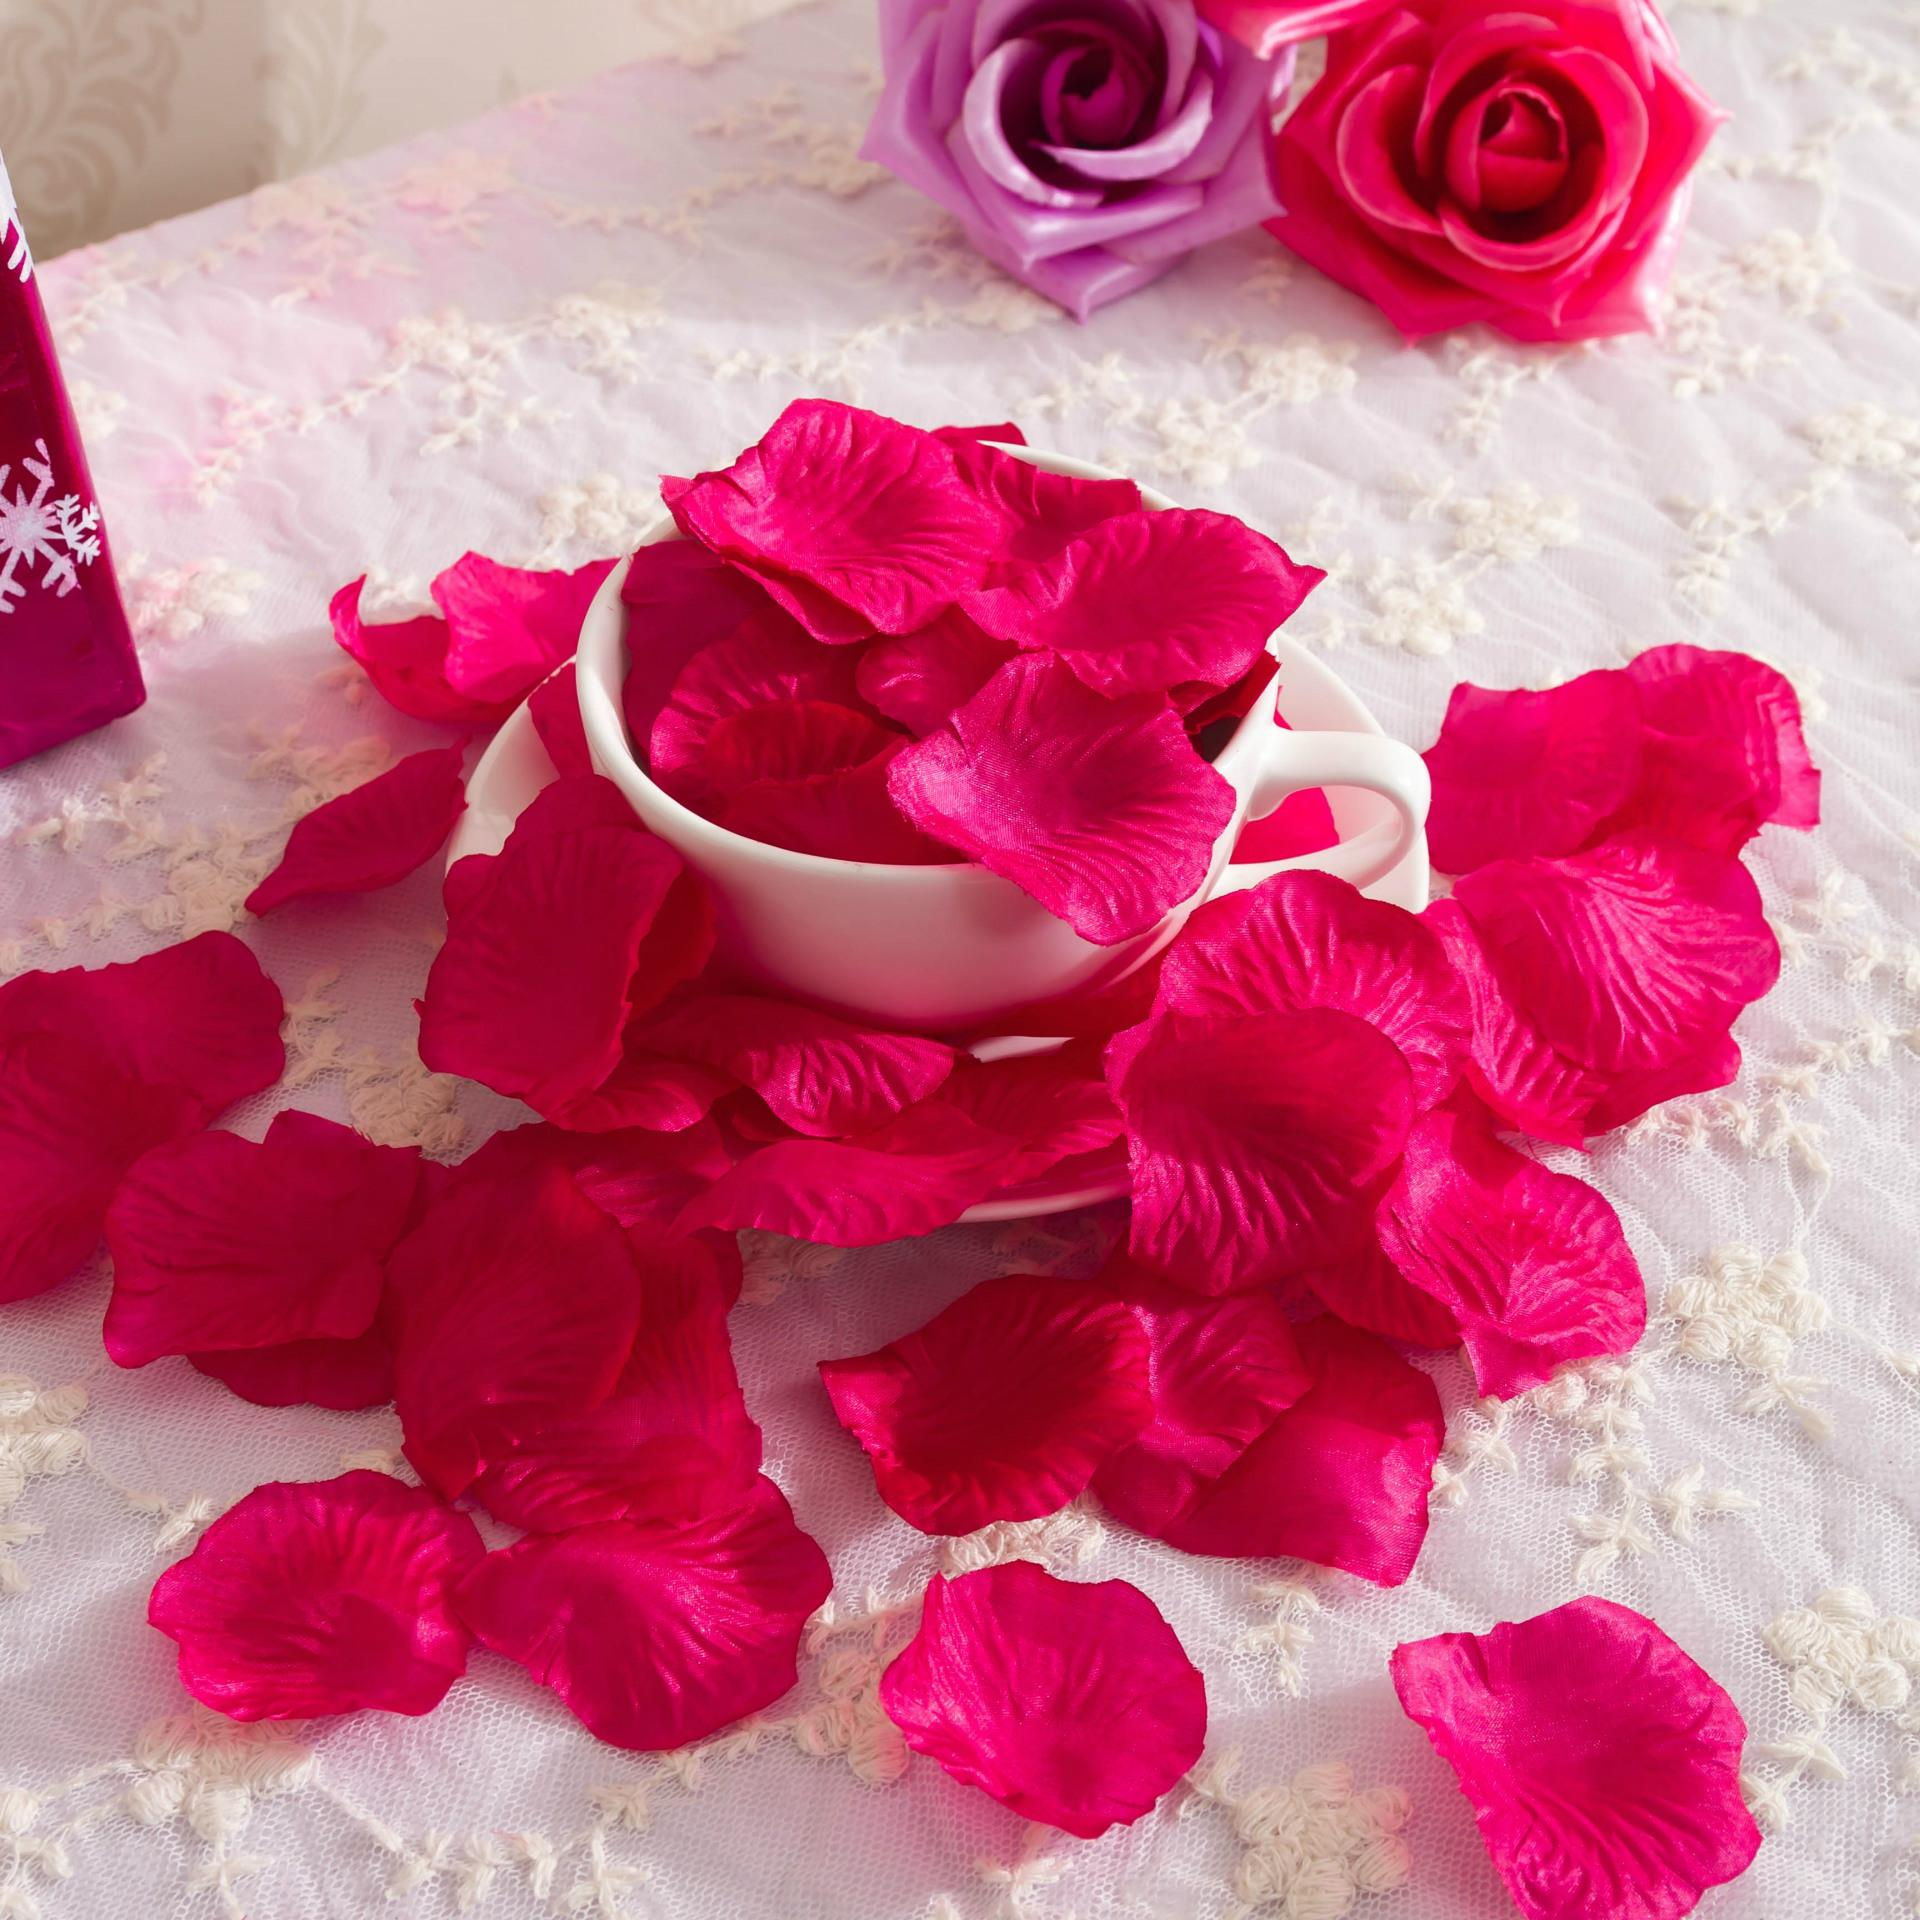 wholesale 100pcsset various colors silk flower rose petals silk wedding flowers centerpieces are widely used in many situations by people around the world the functions of the silk wedding flowers cheap are great izmirmasajfo